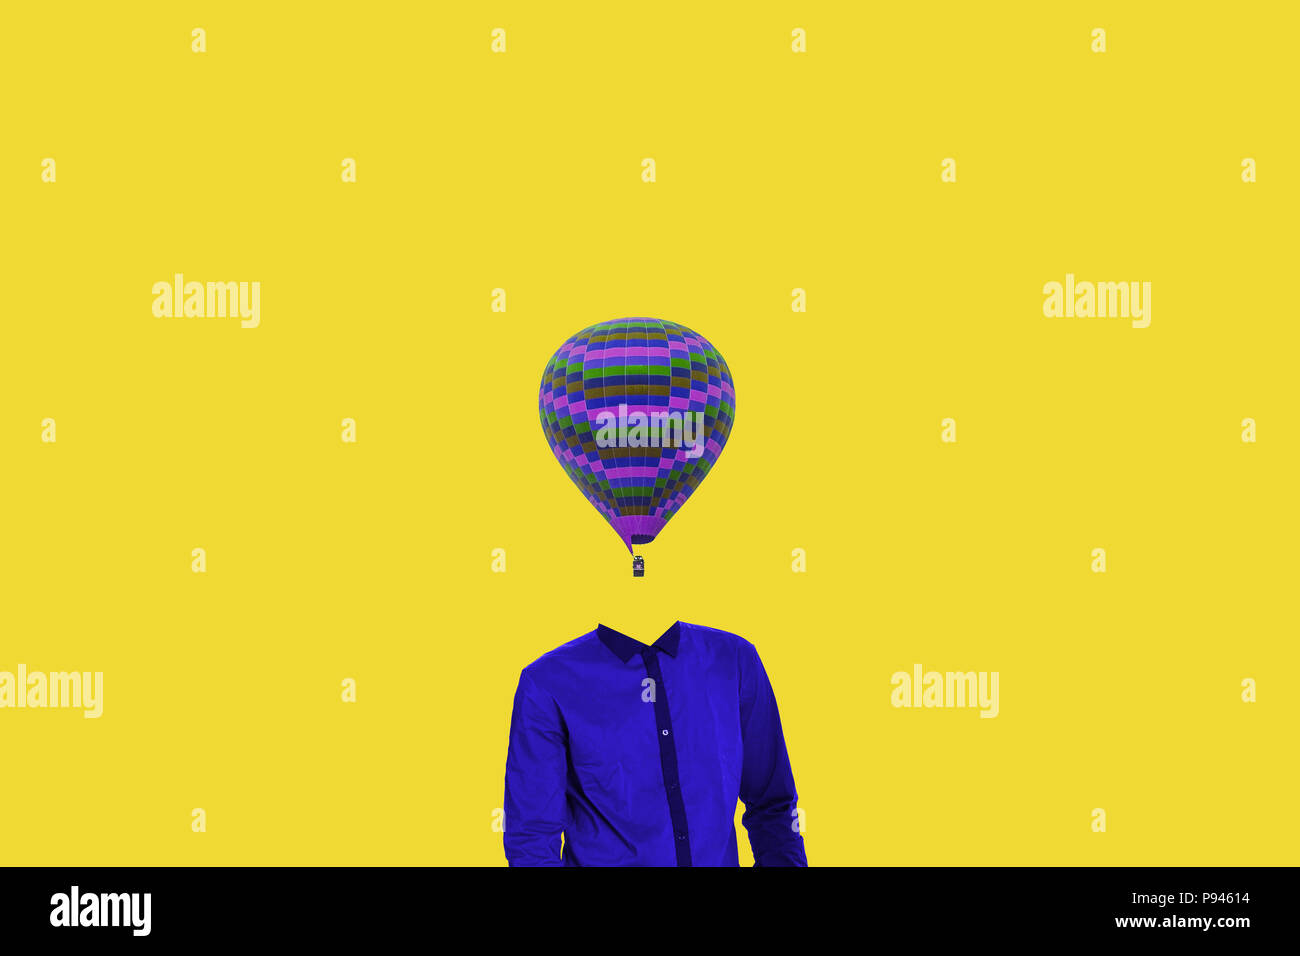 Surrealistic minimal concept. A balloon instead of a human head. Minimalism and surrealism. My idea, design and art work. - Stock Image